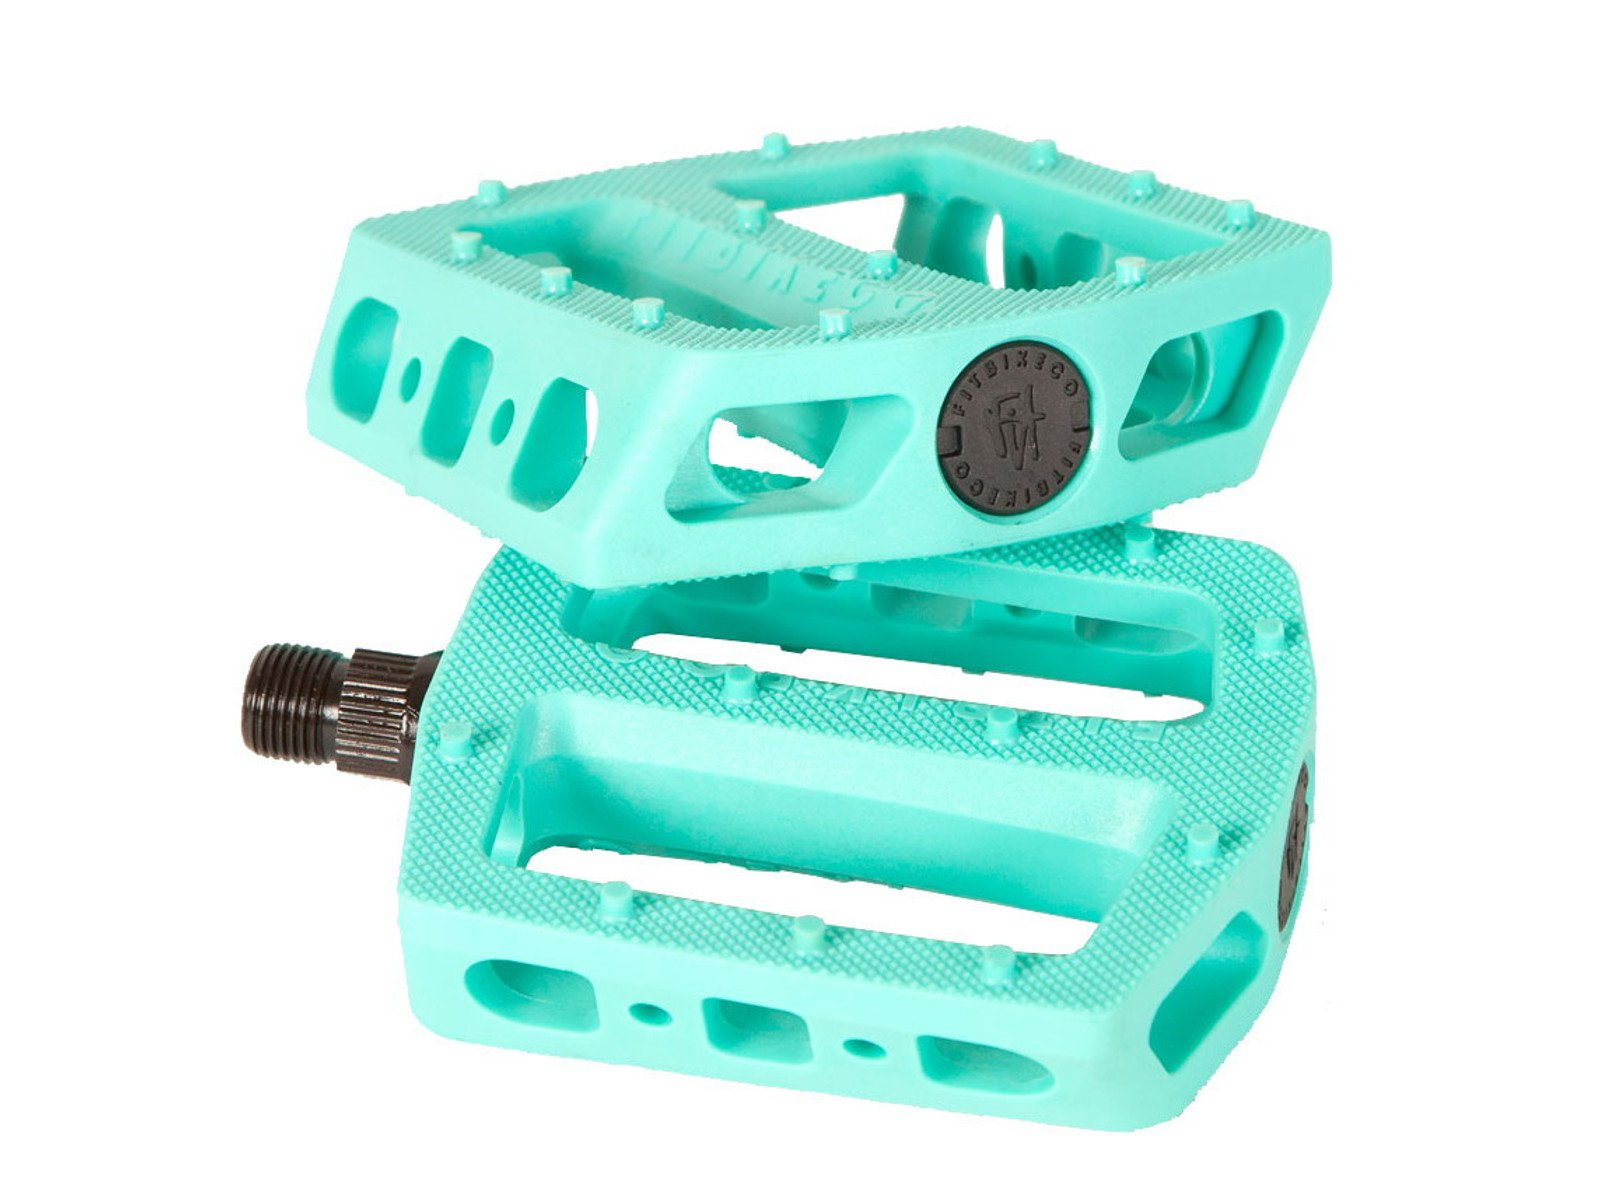 BMX BIKE FITBIKE MACK-PC PEDALS OIL SLICK